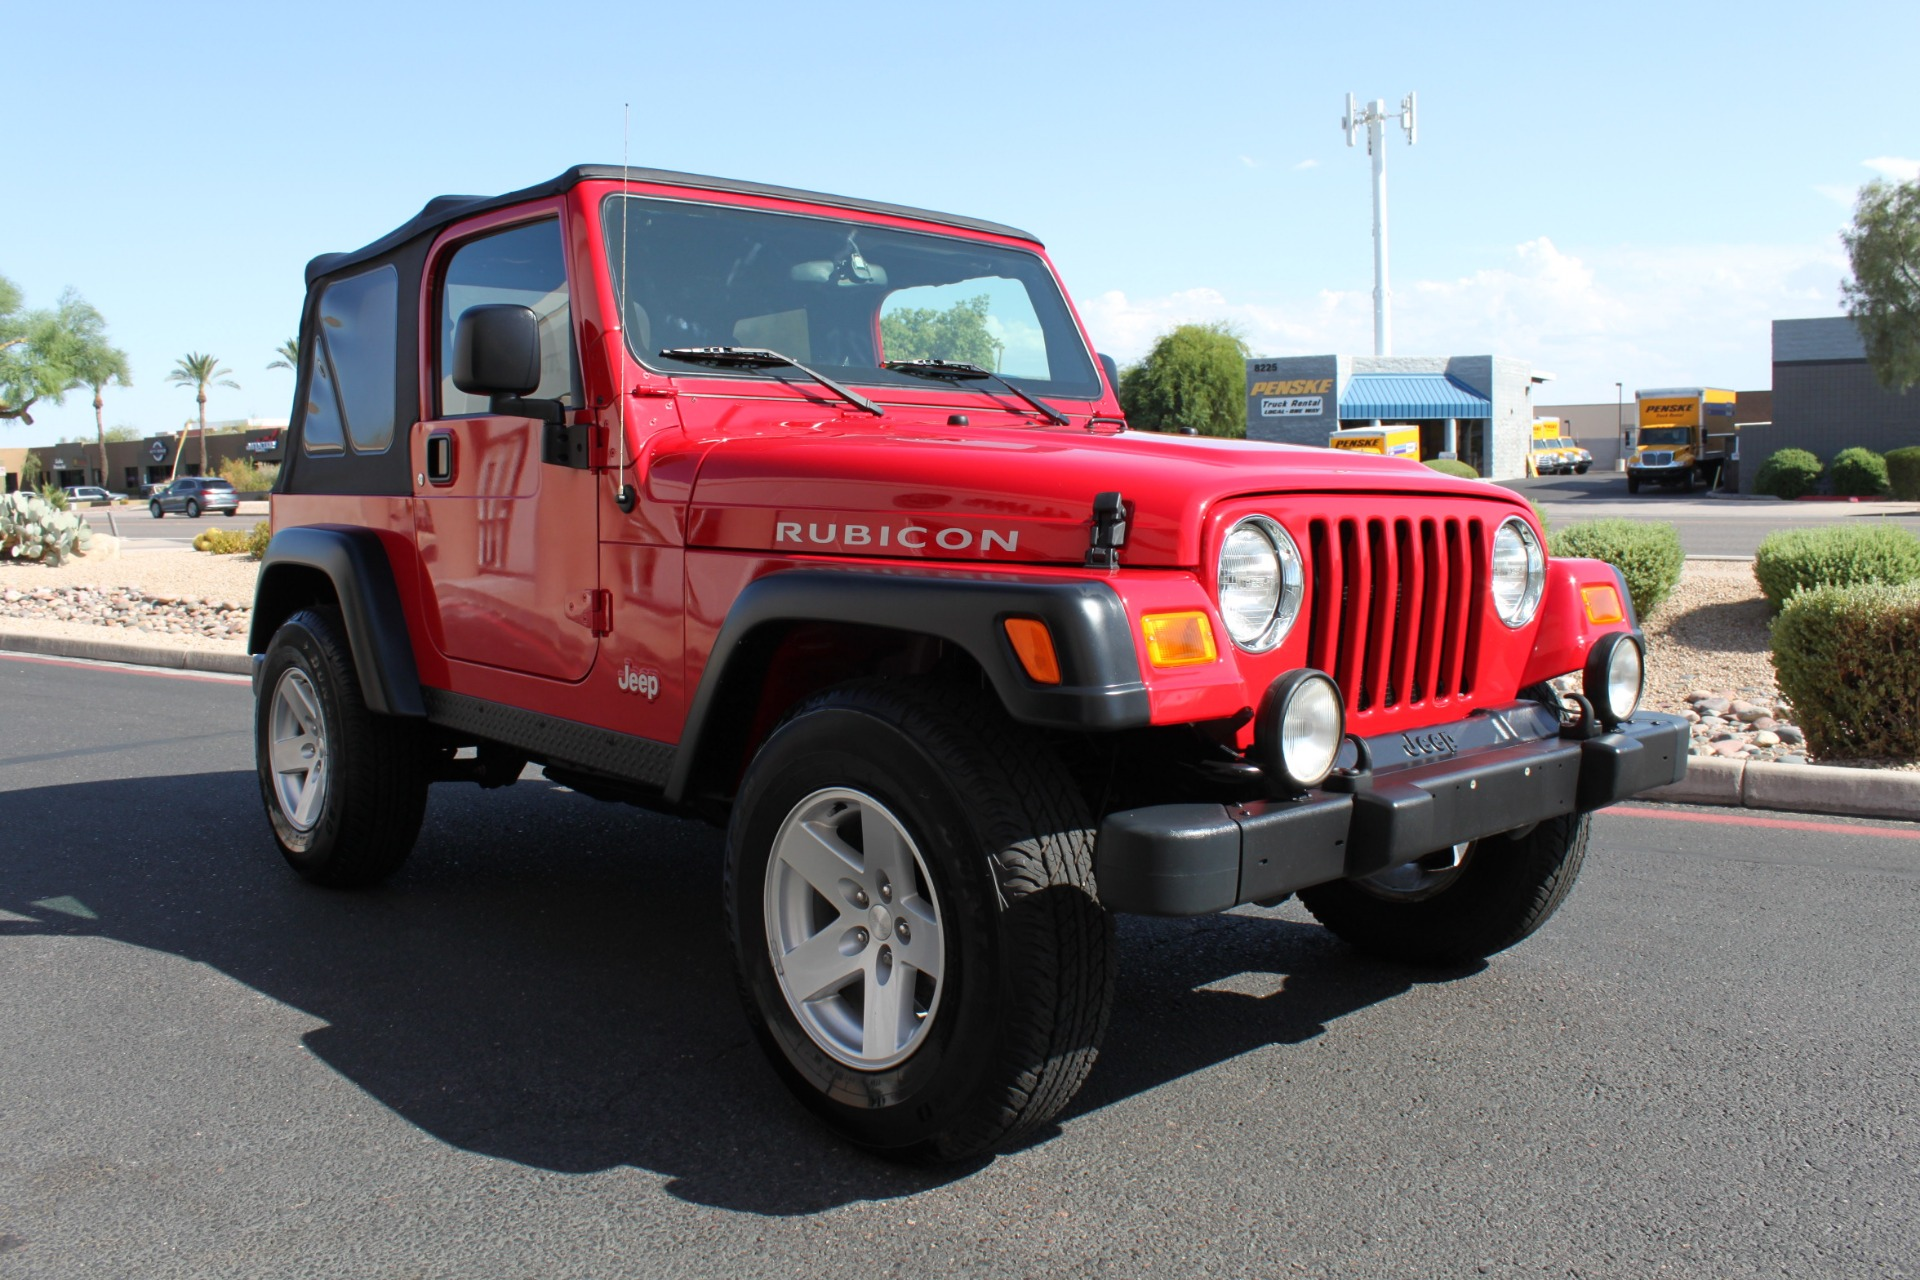 Used-2006-Jeep-Wrangler-Rubicon-Mercedes-Benz